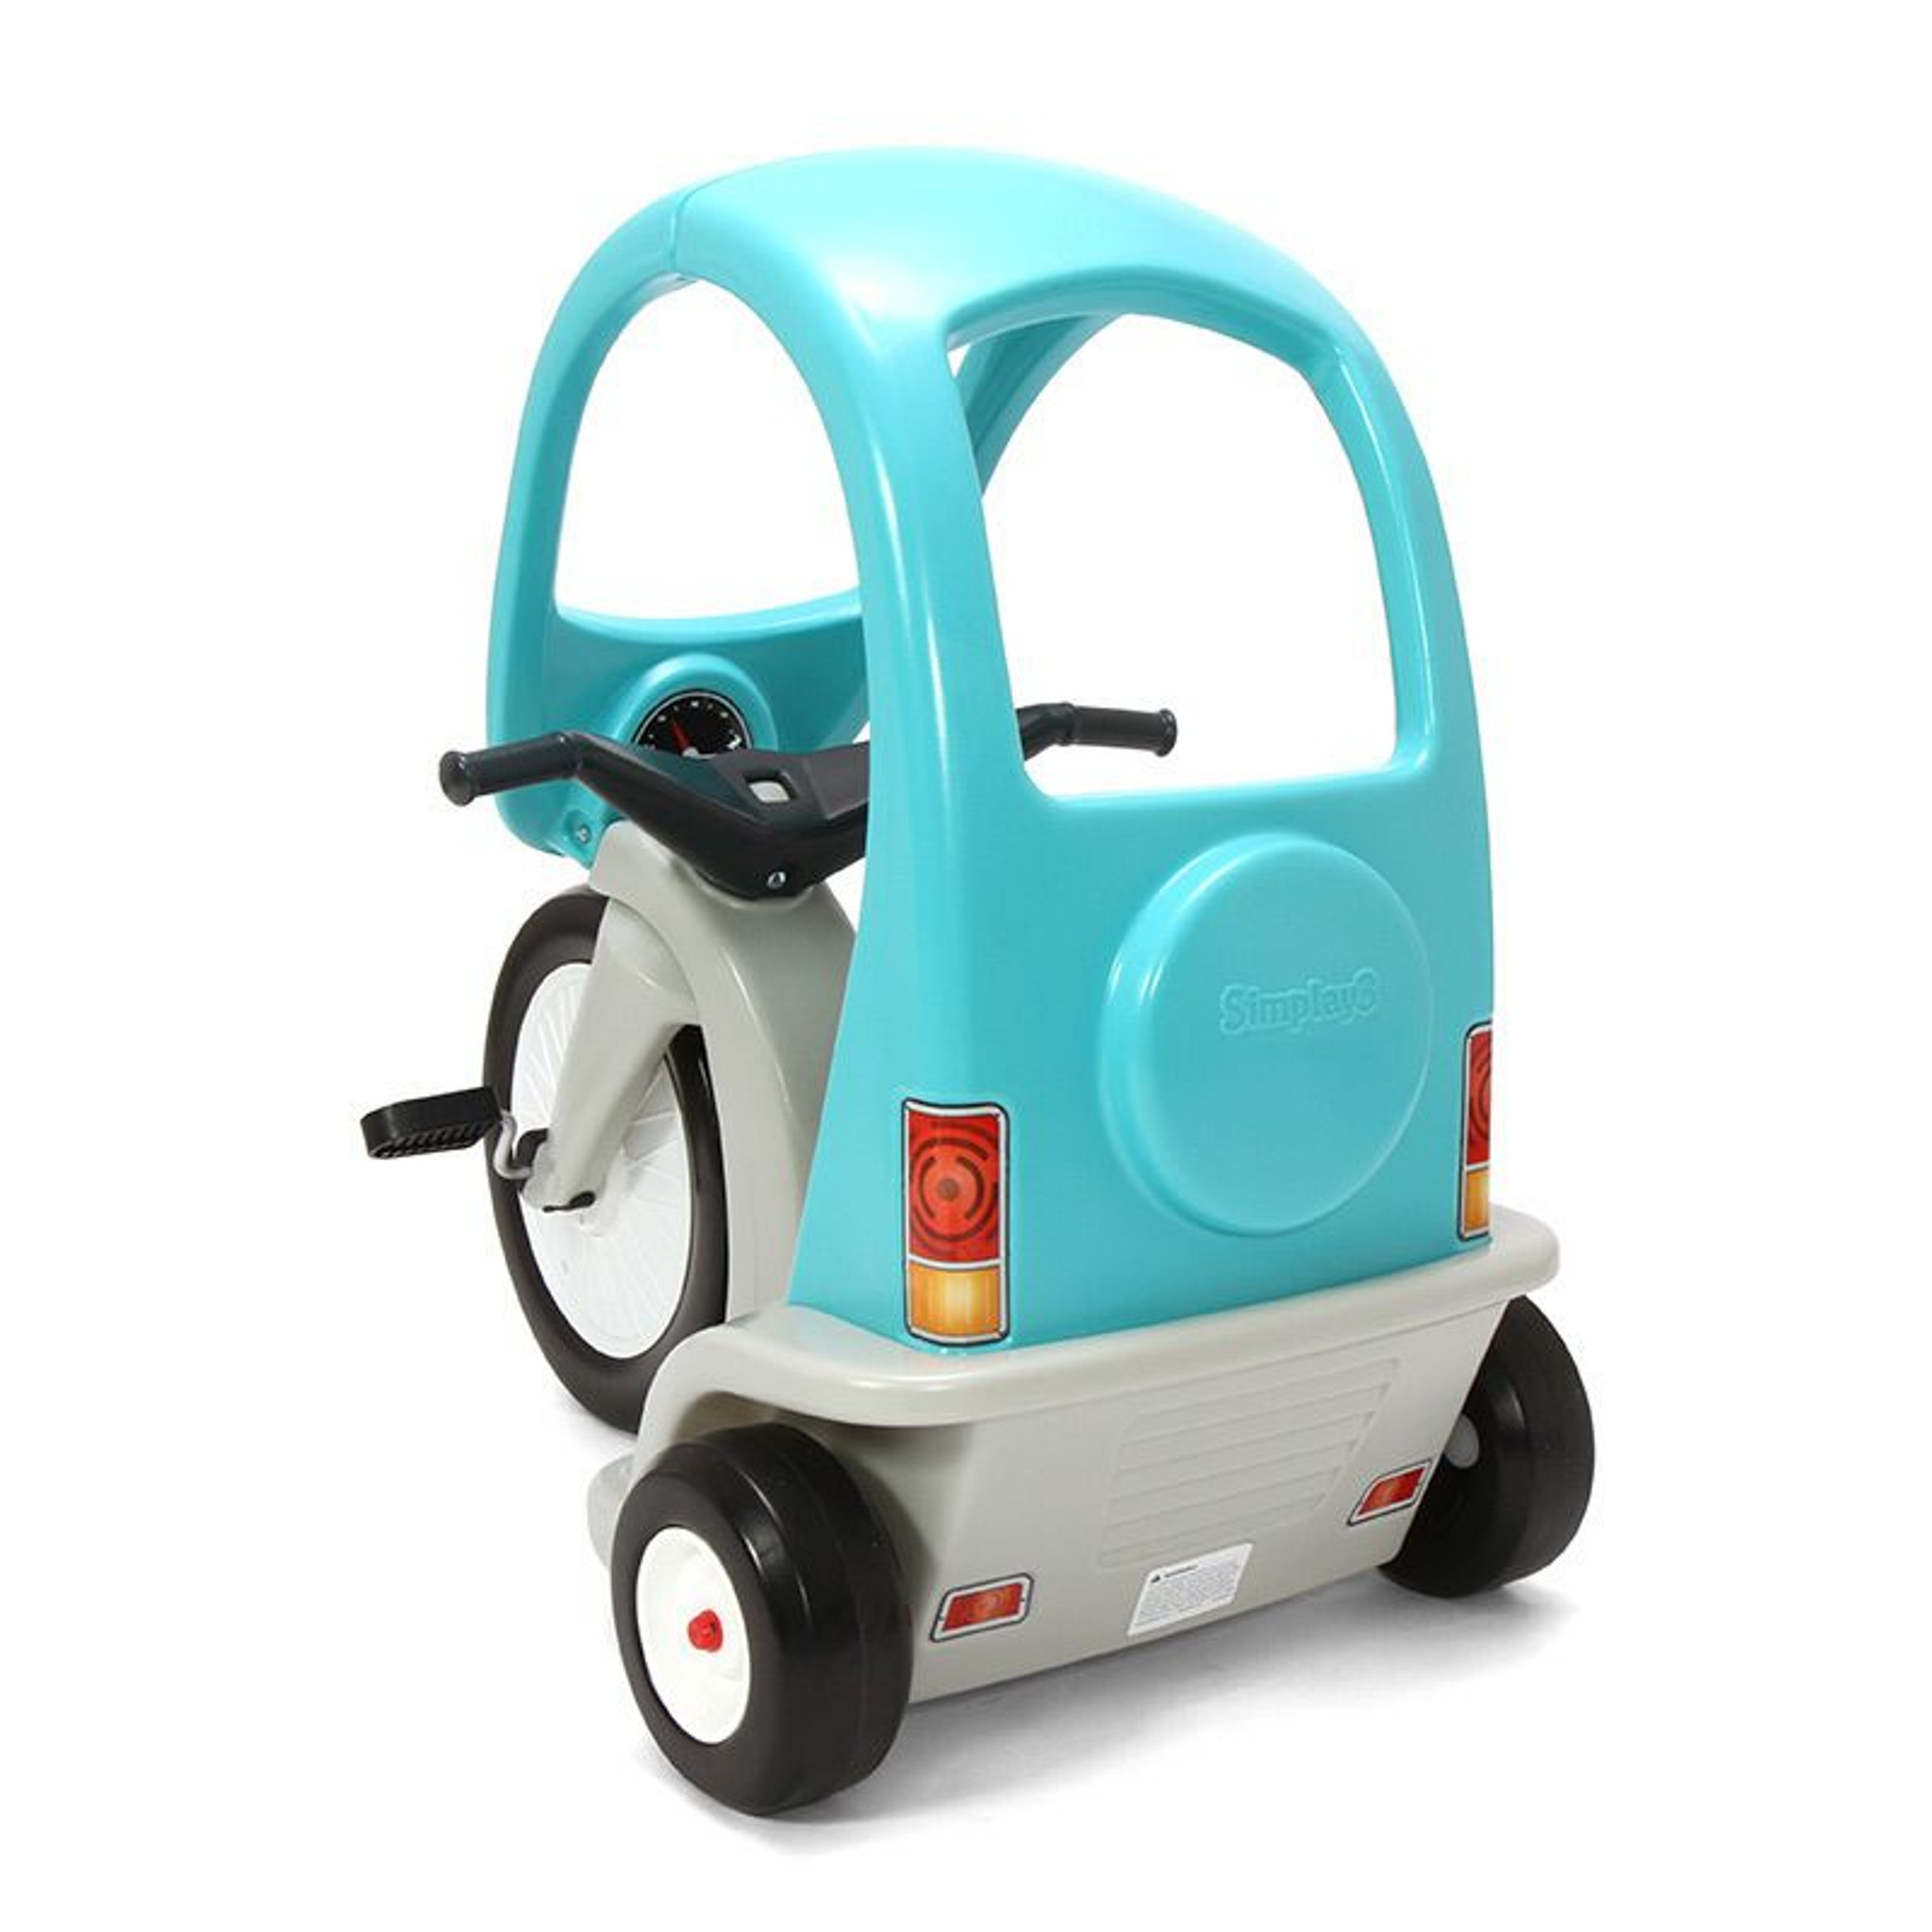 Simplay3 Kids Super Coupe Pedal Car w// Roof and 3-Position Seat